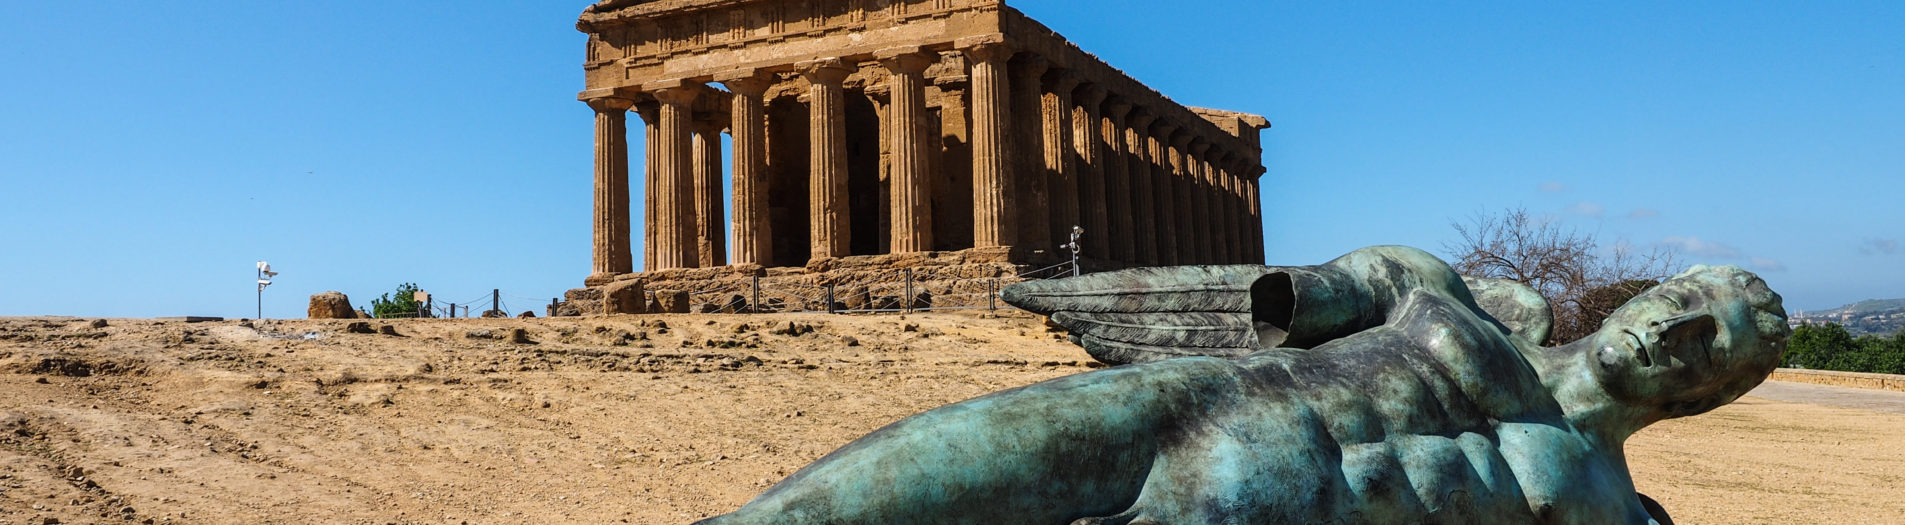 Roadtrip en Sicile - L'antique Agrigento